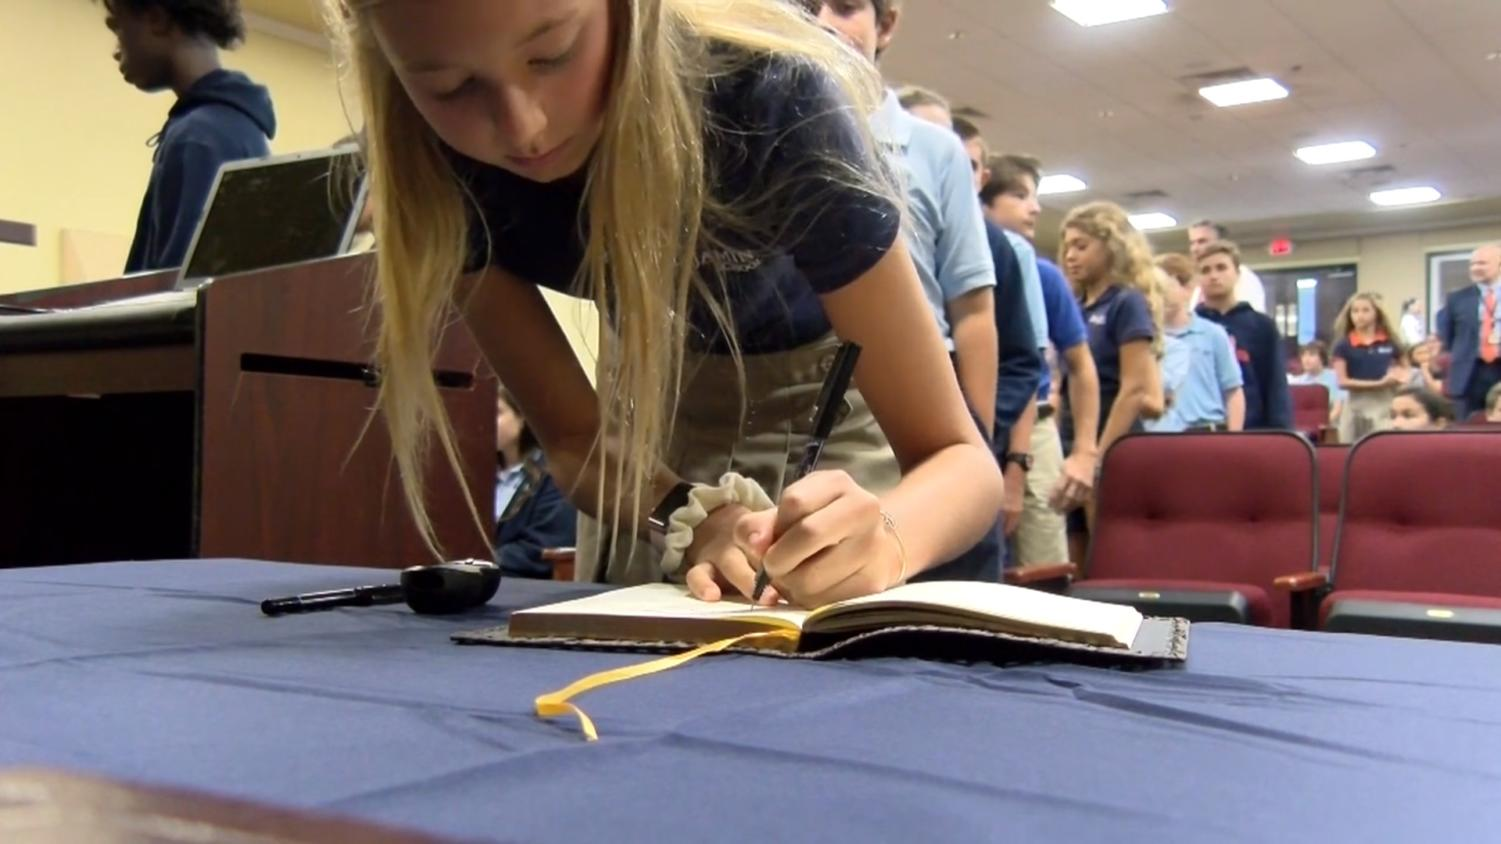 Seventh grader Mimi Chandler signs the honor code book during the Honor Code assembly which TBS News covered in its broadcast.